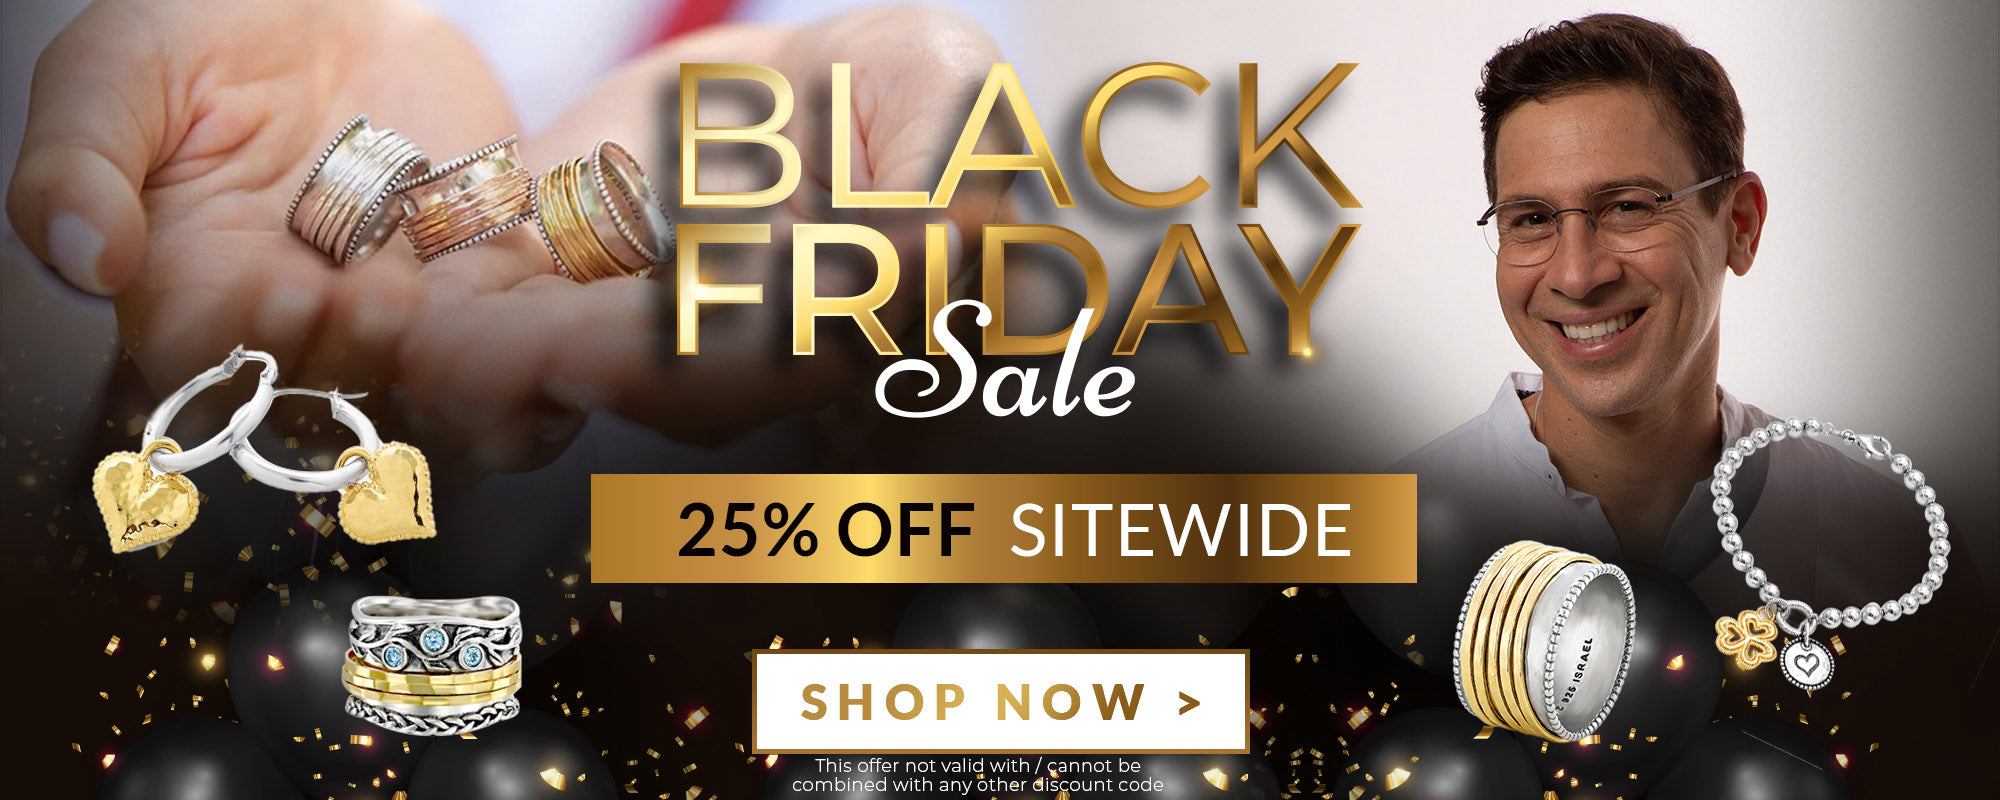 Black Friday Sales Event Danny Newfeld Collection